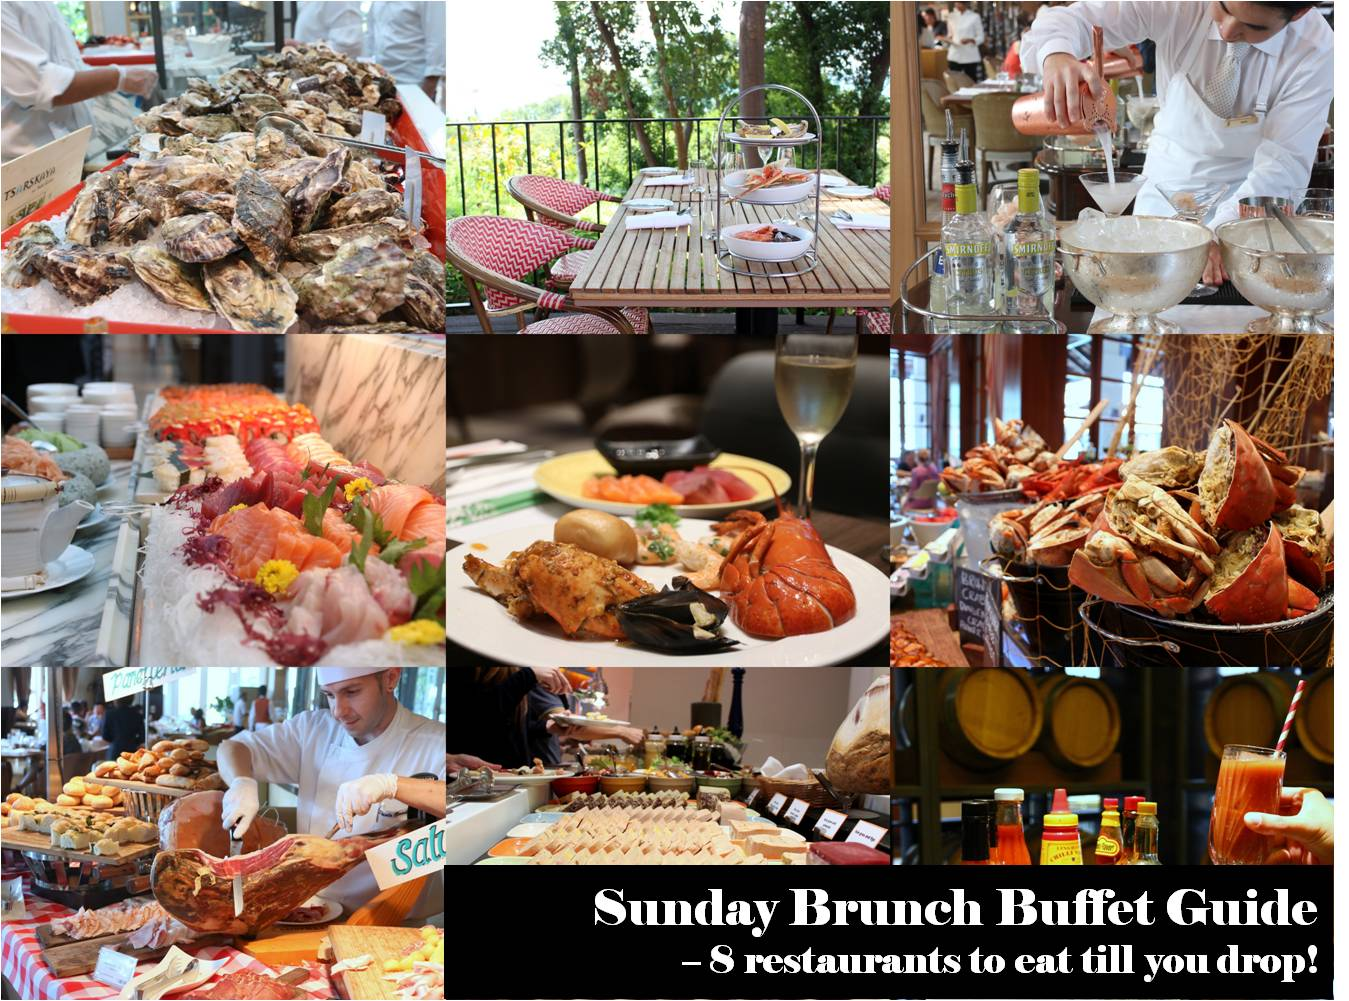 Strange Snippets 8 Sunday Brunch Buffets In Singapore You Should Beutiful Home Inspiration Papxelindsey Bellcom